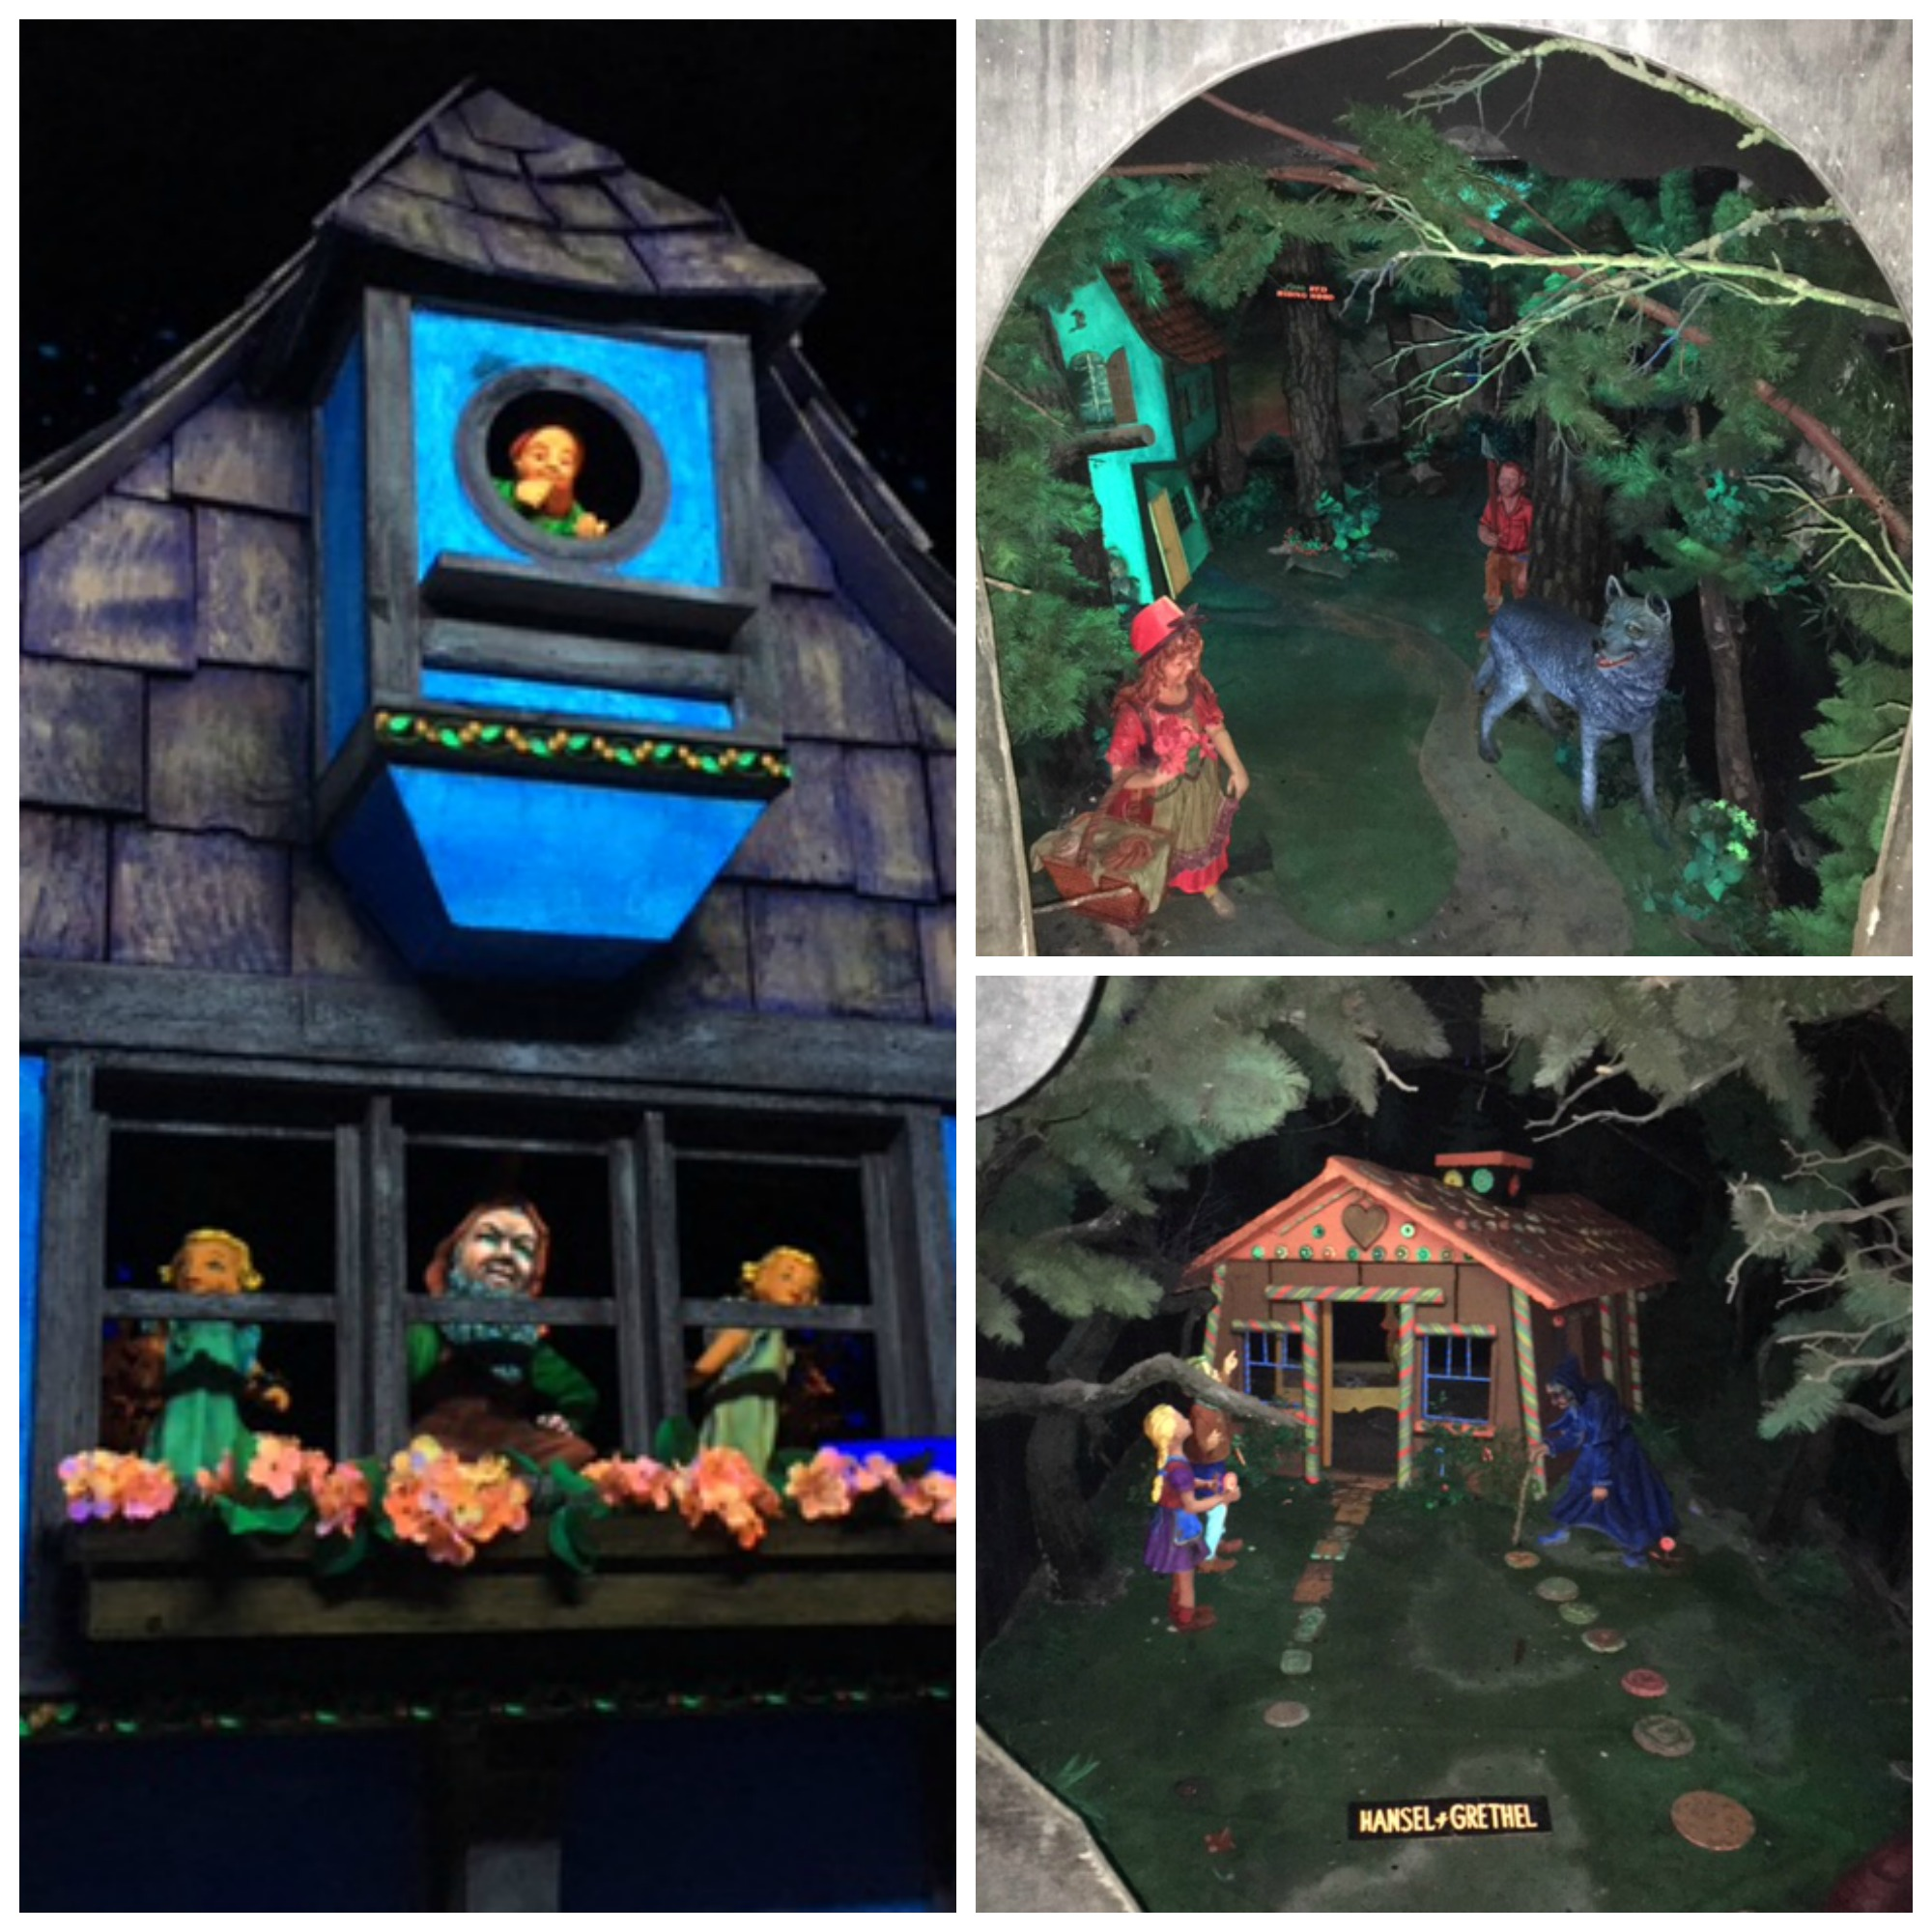 Super creepy black light dioramas.